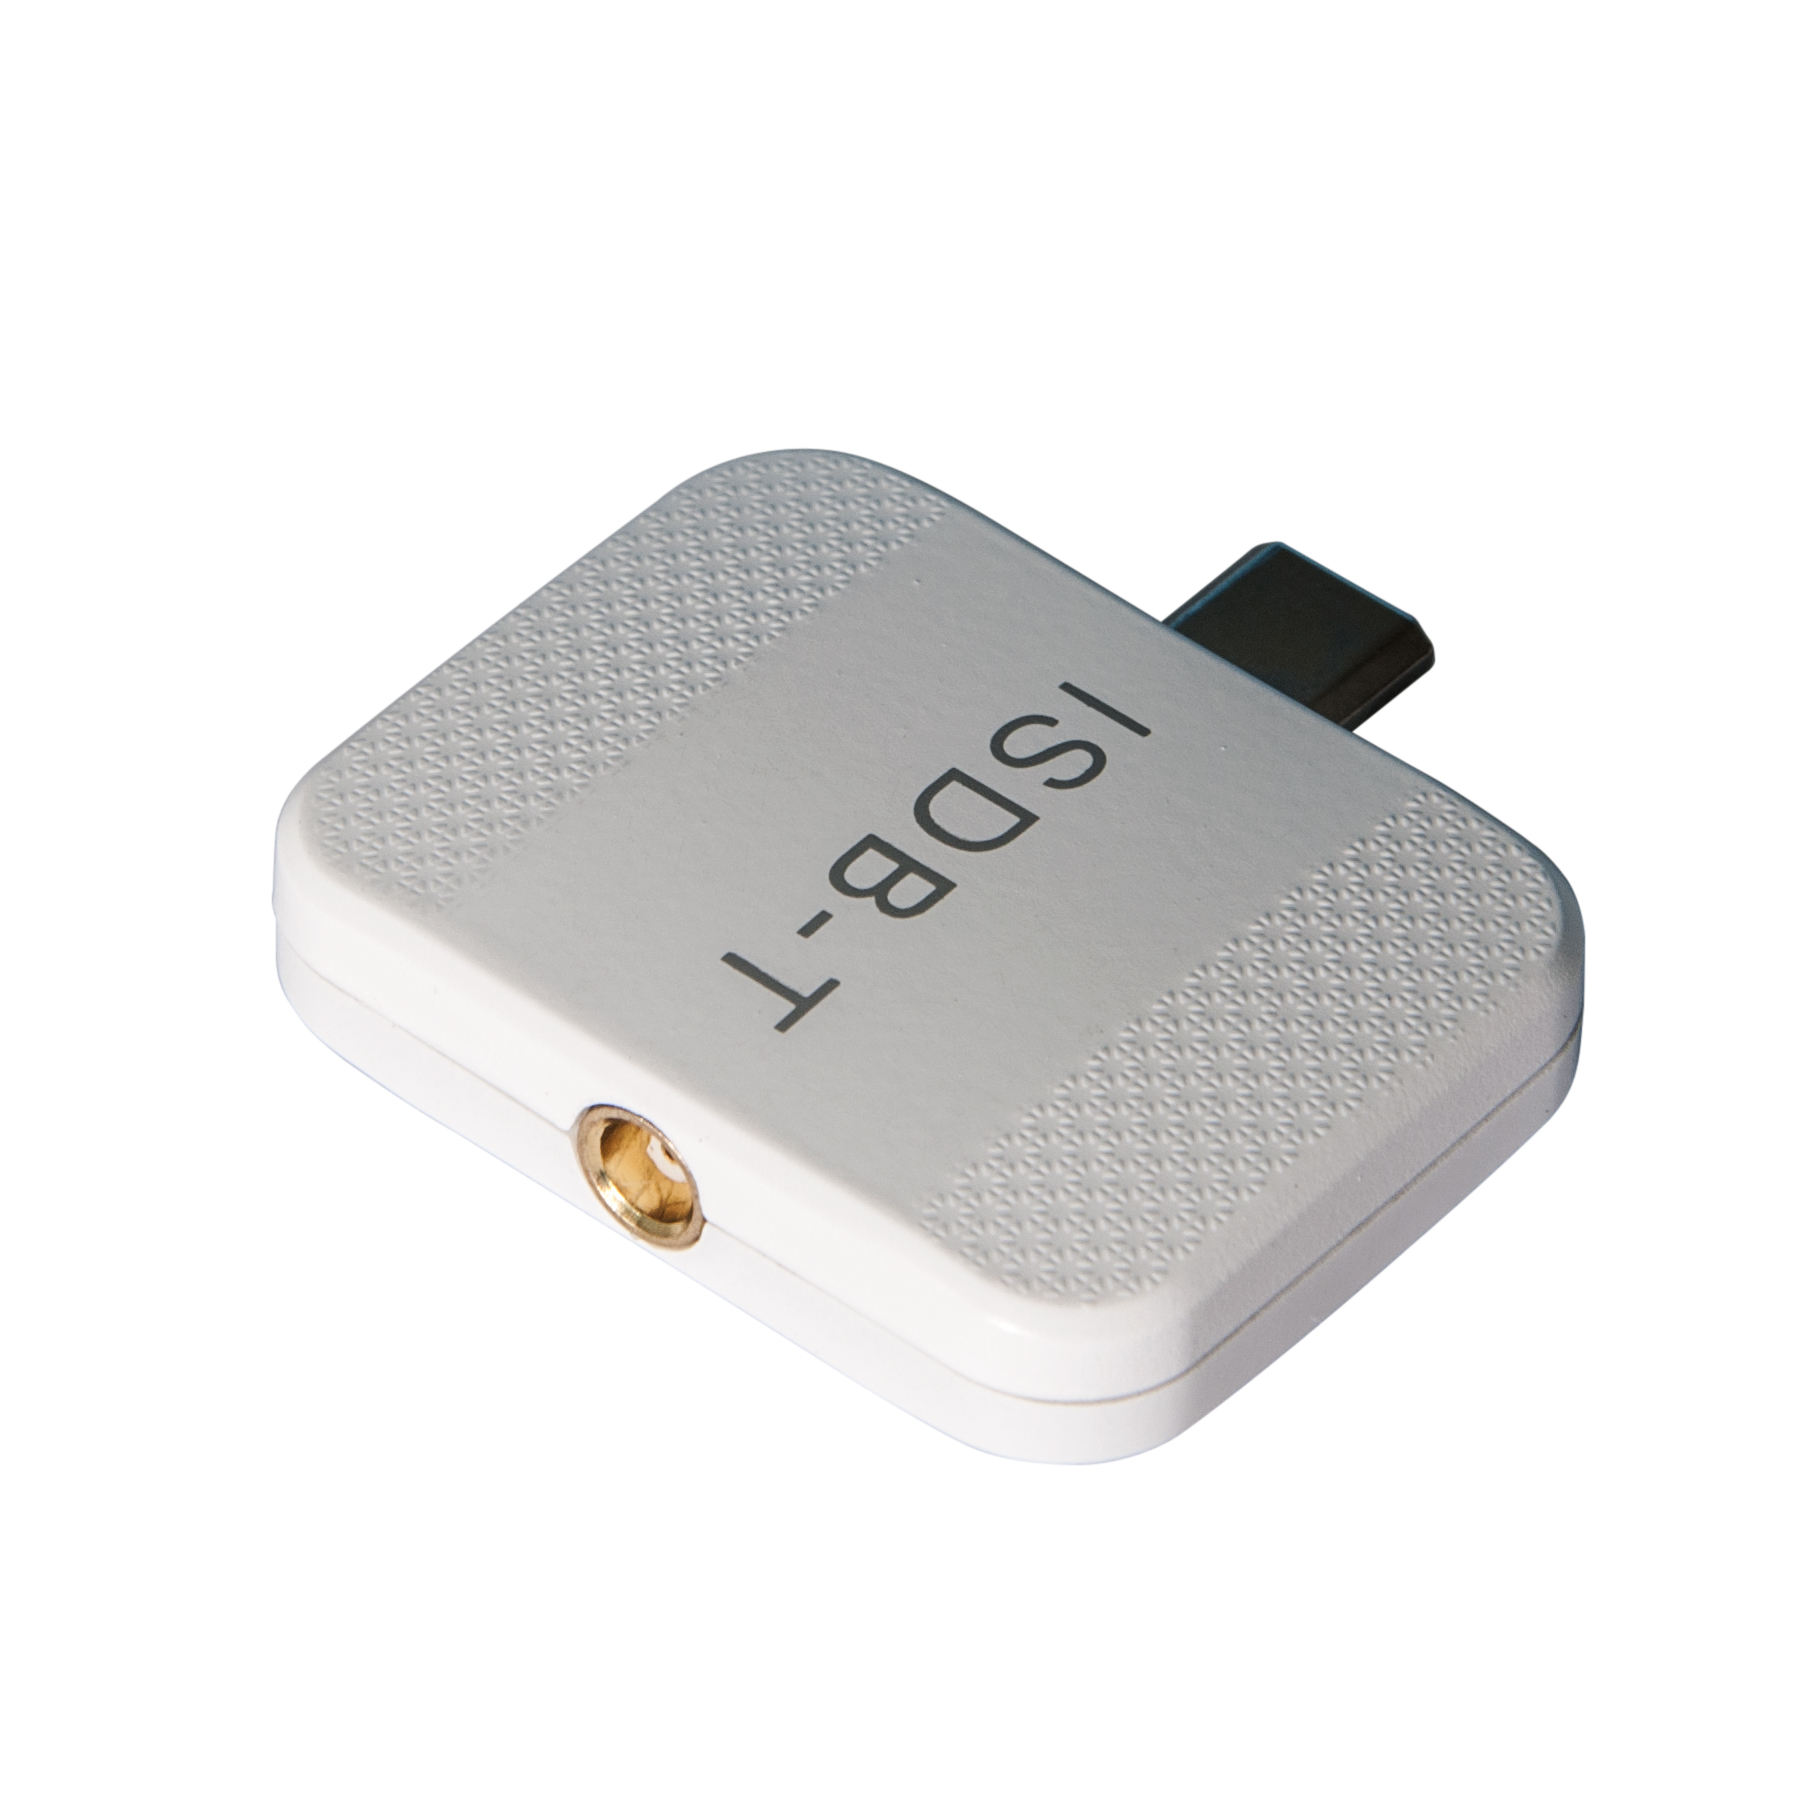 Mini micro usb ISDB-T complet seg tuner tv pour tablette <span class=keywords><strong>android</strong></span>